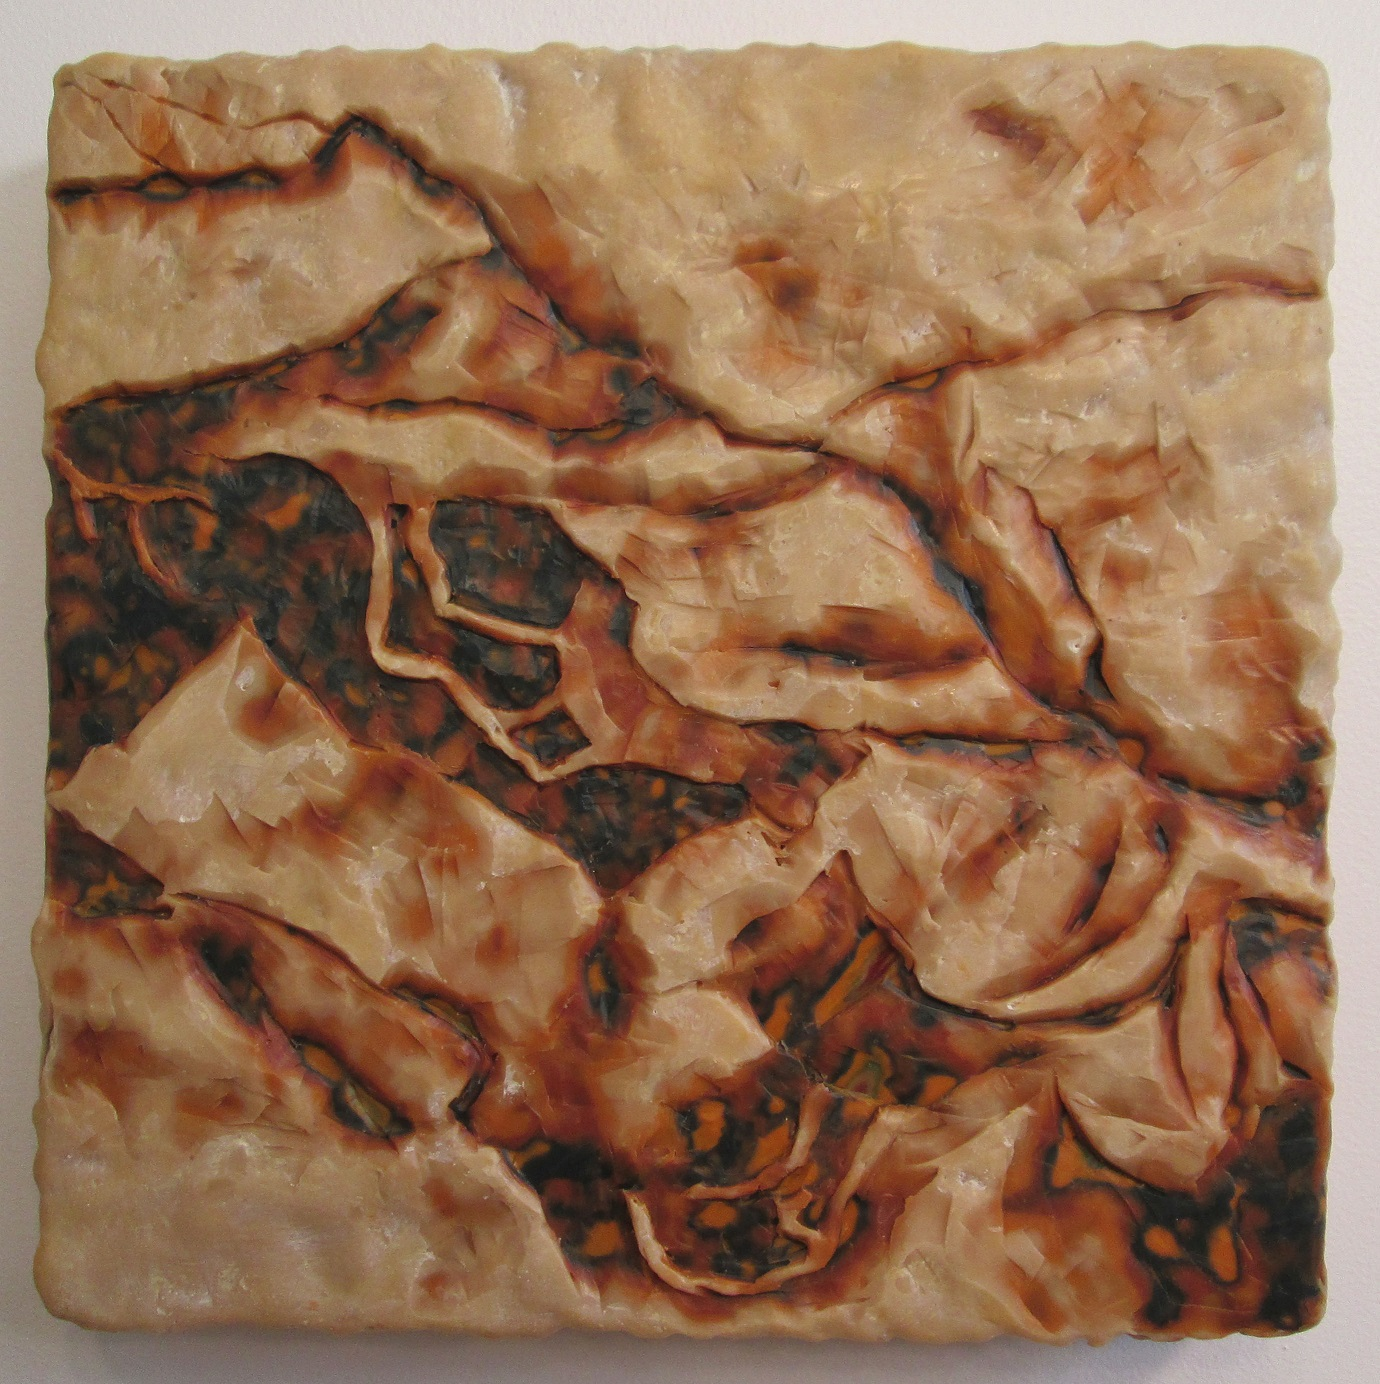 "Excavation #4; Layered and carved encaustic with oils on wooden panel; 12""h x 12""w x 2.25""d; 2001"